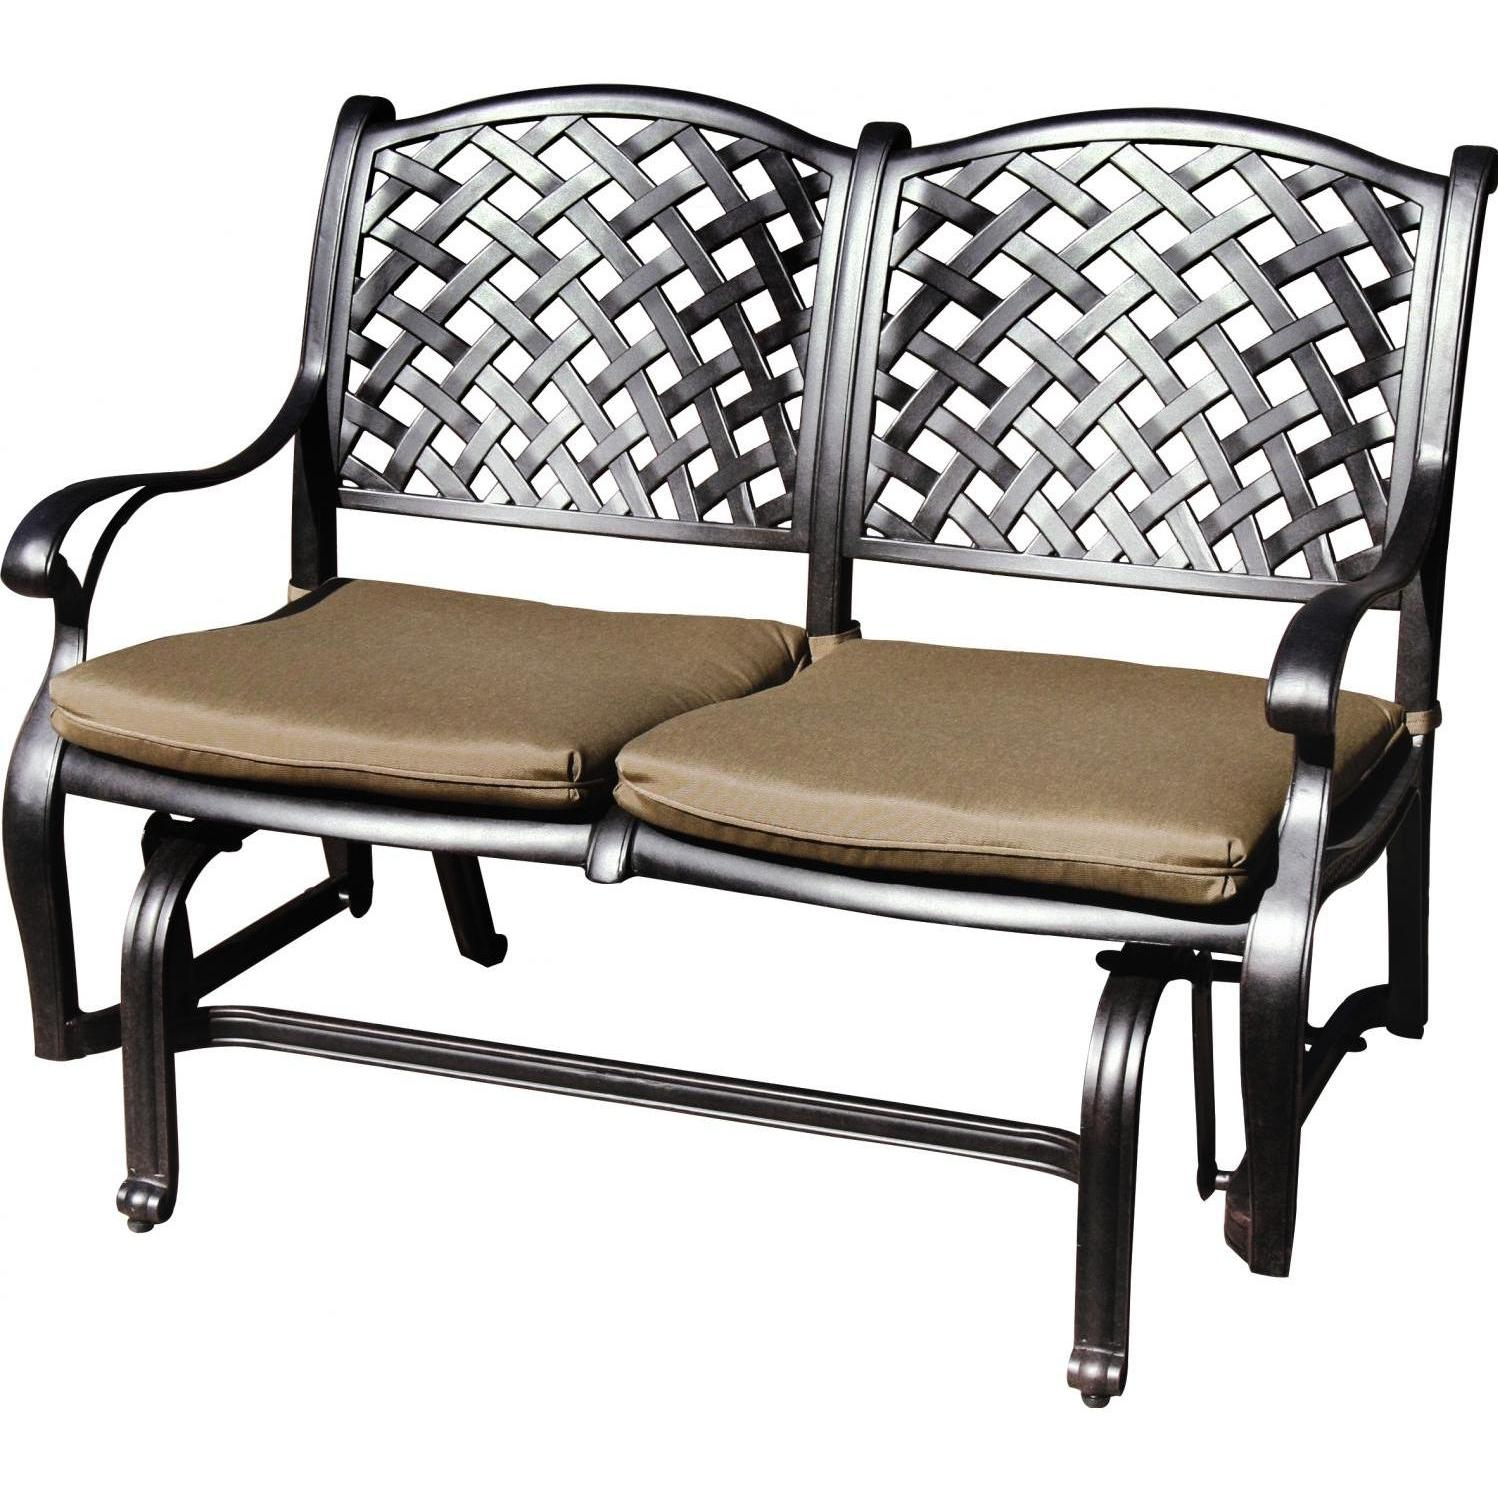 patio glider darlee nassau cast aluminum patio bench